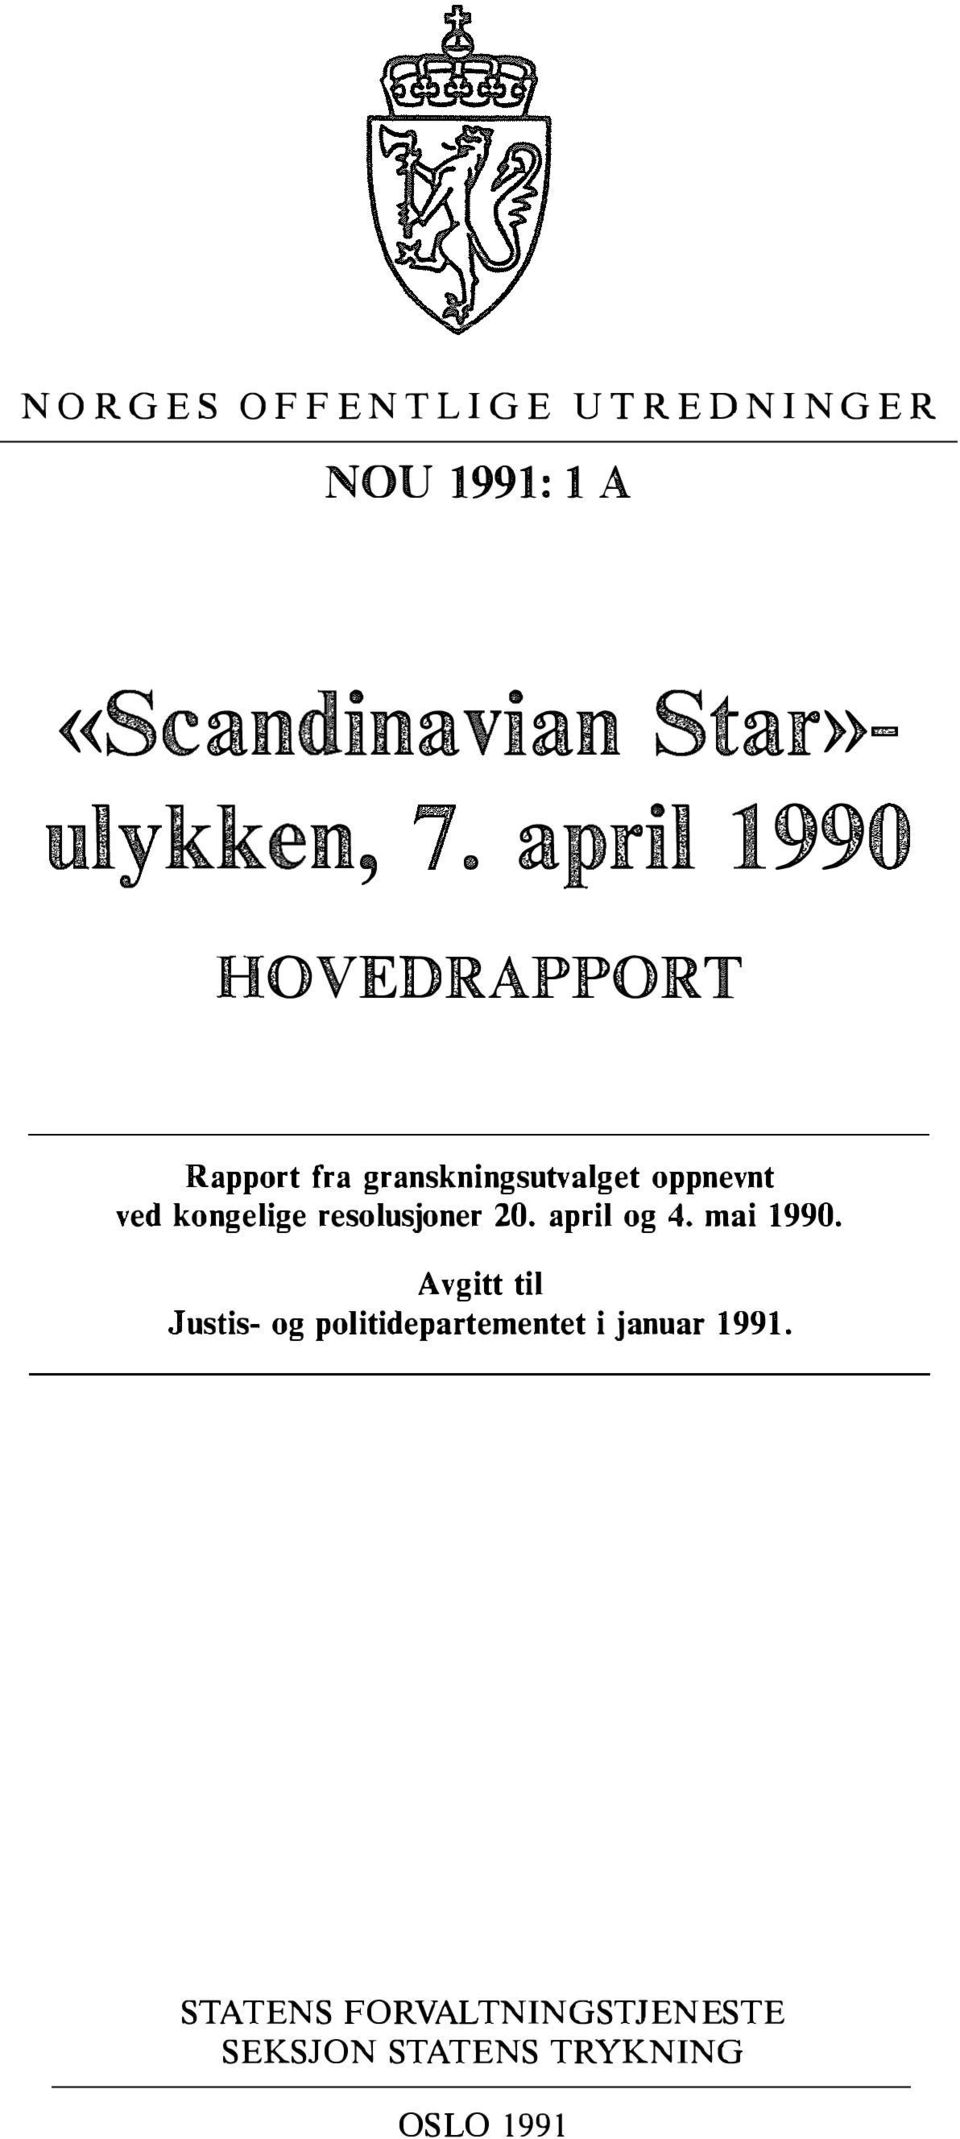 kongelige resolusjoner 20. april og 4. mai 1990.